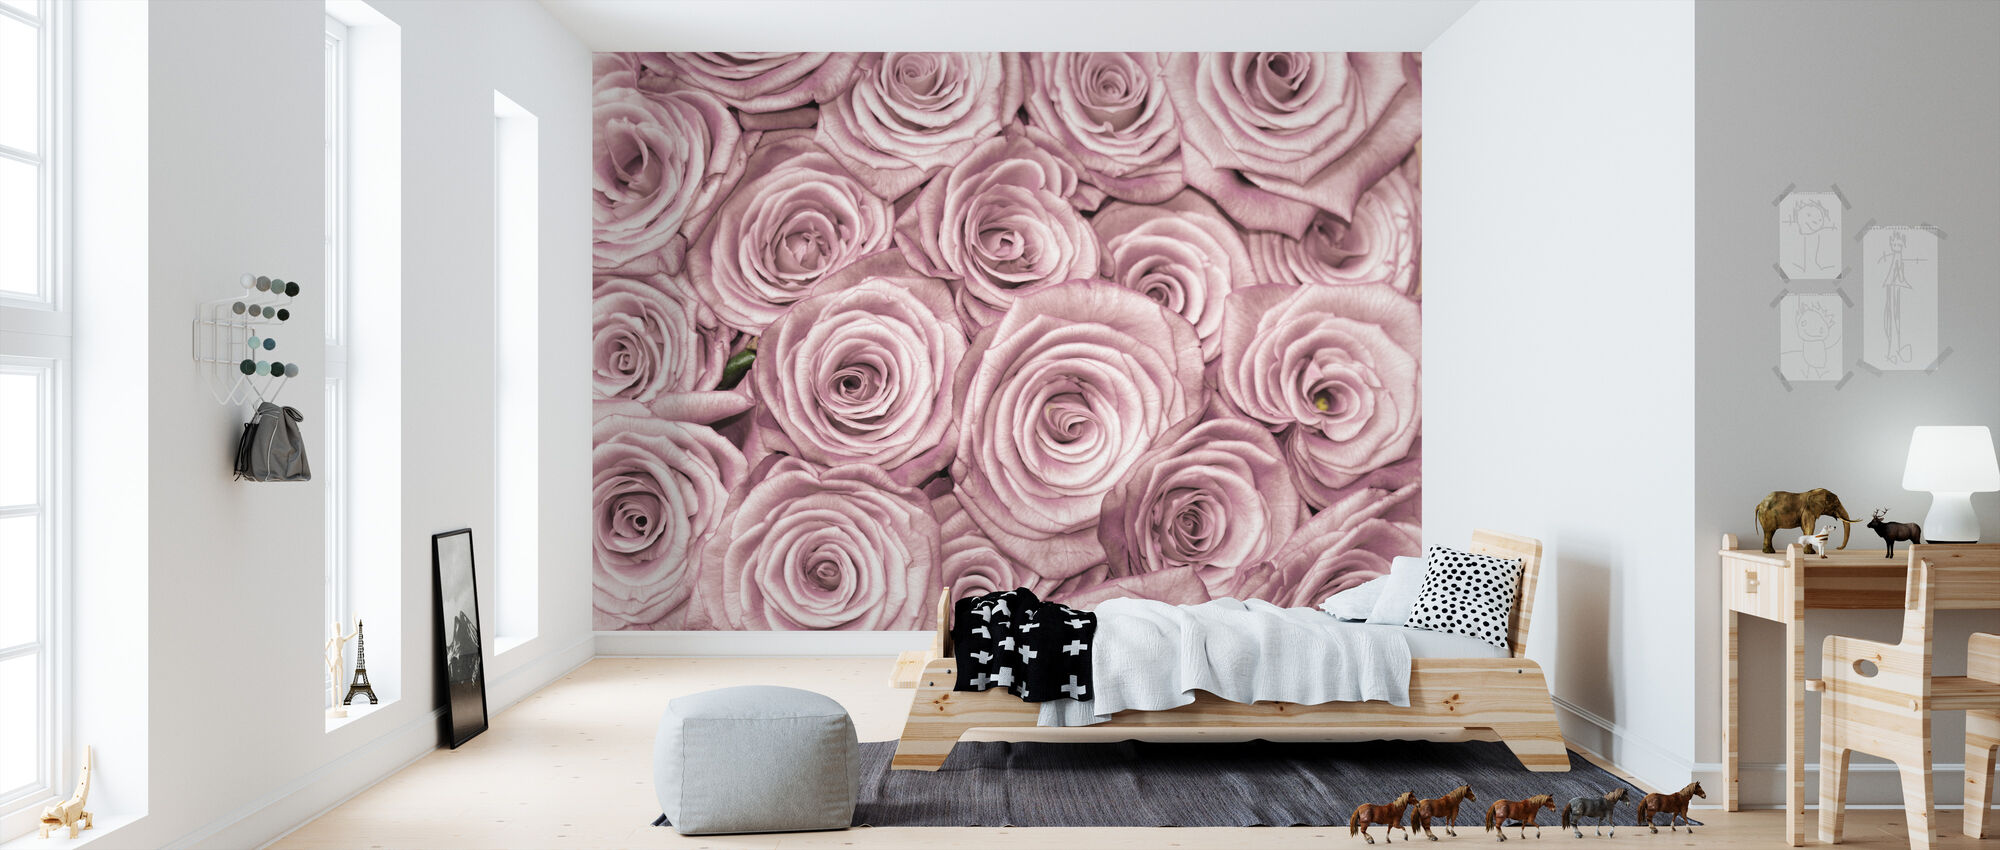 Wall of Roses - Wallpaper - Kids Room